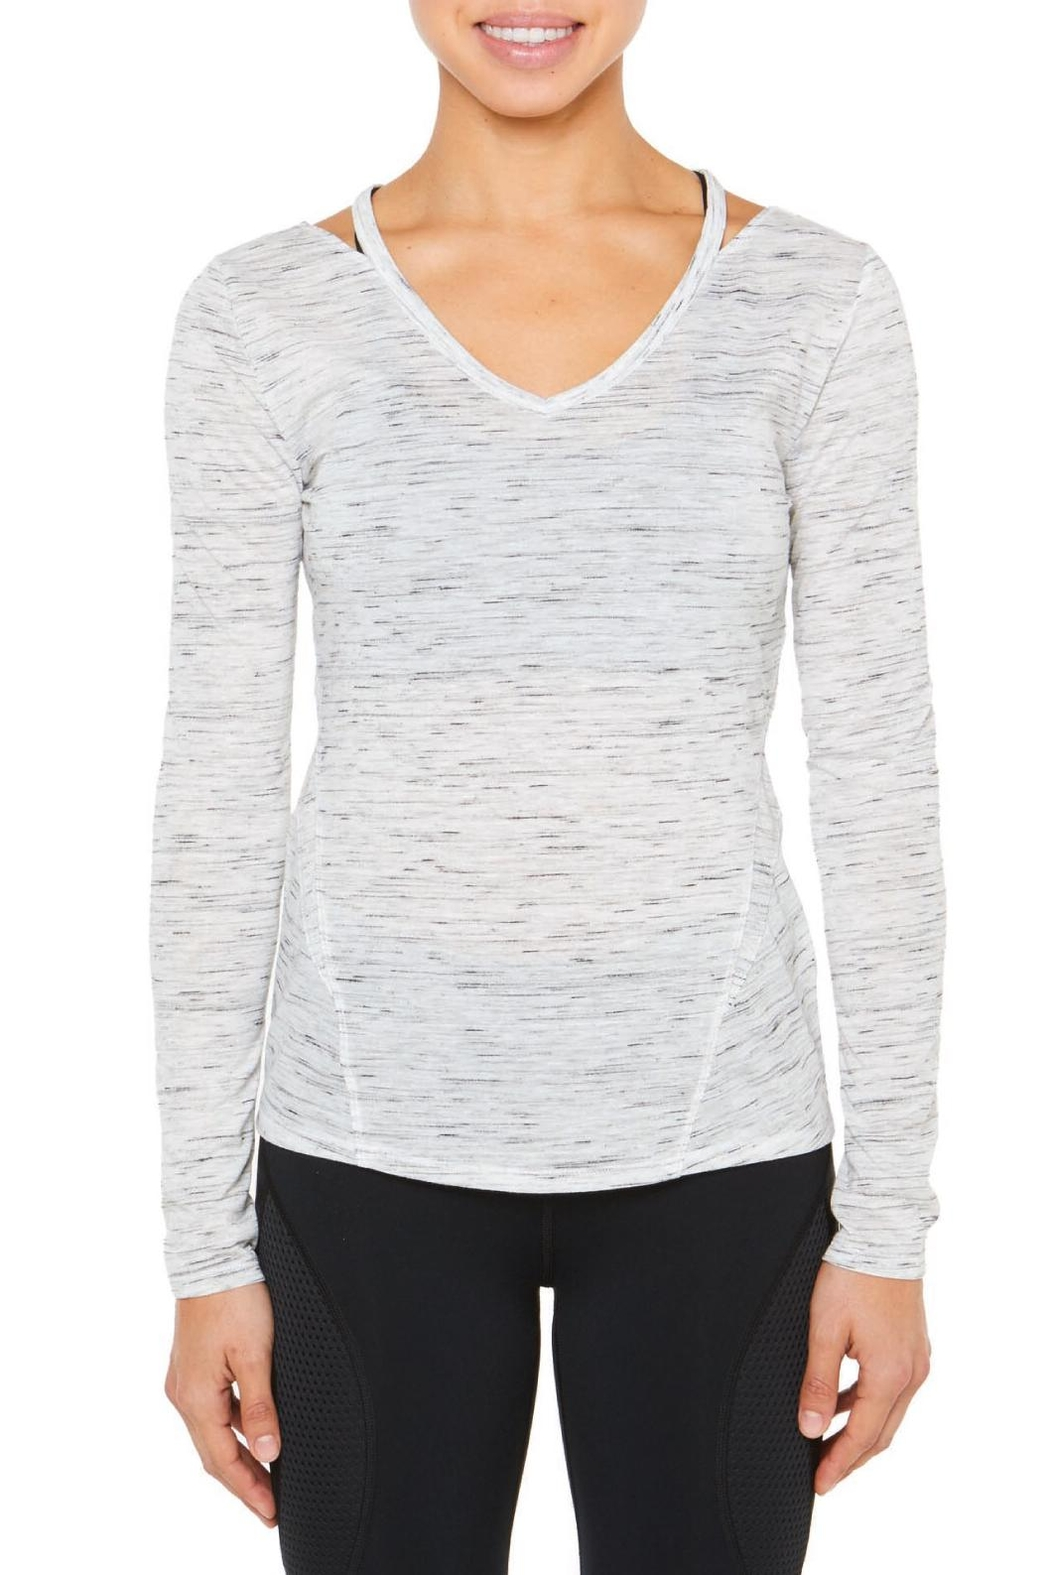 SHAPE Activewear V Neck Tee - Front Cropped Image